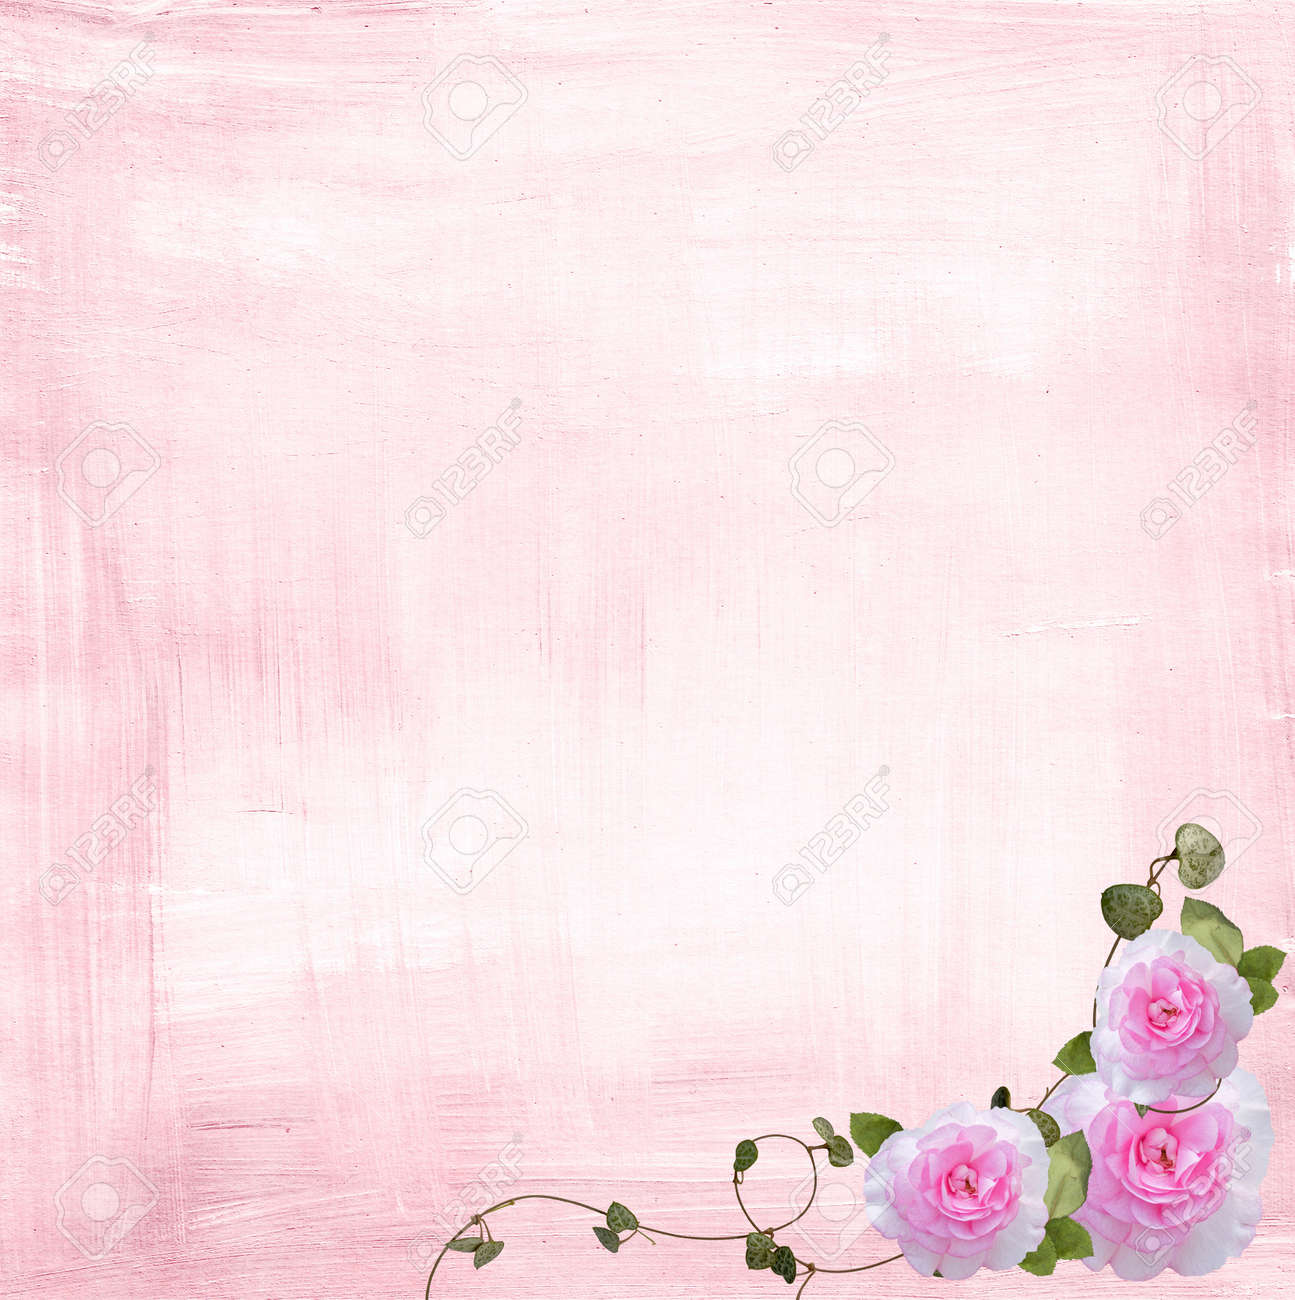 rose and ivy border on pink textured background stock photo picture